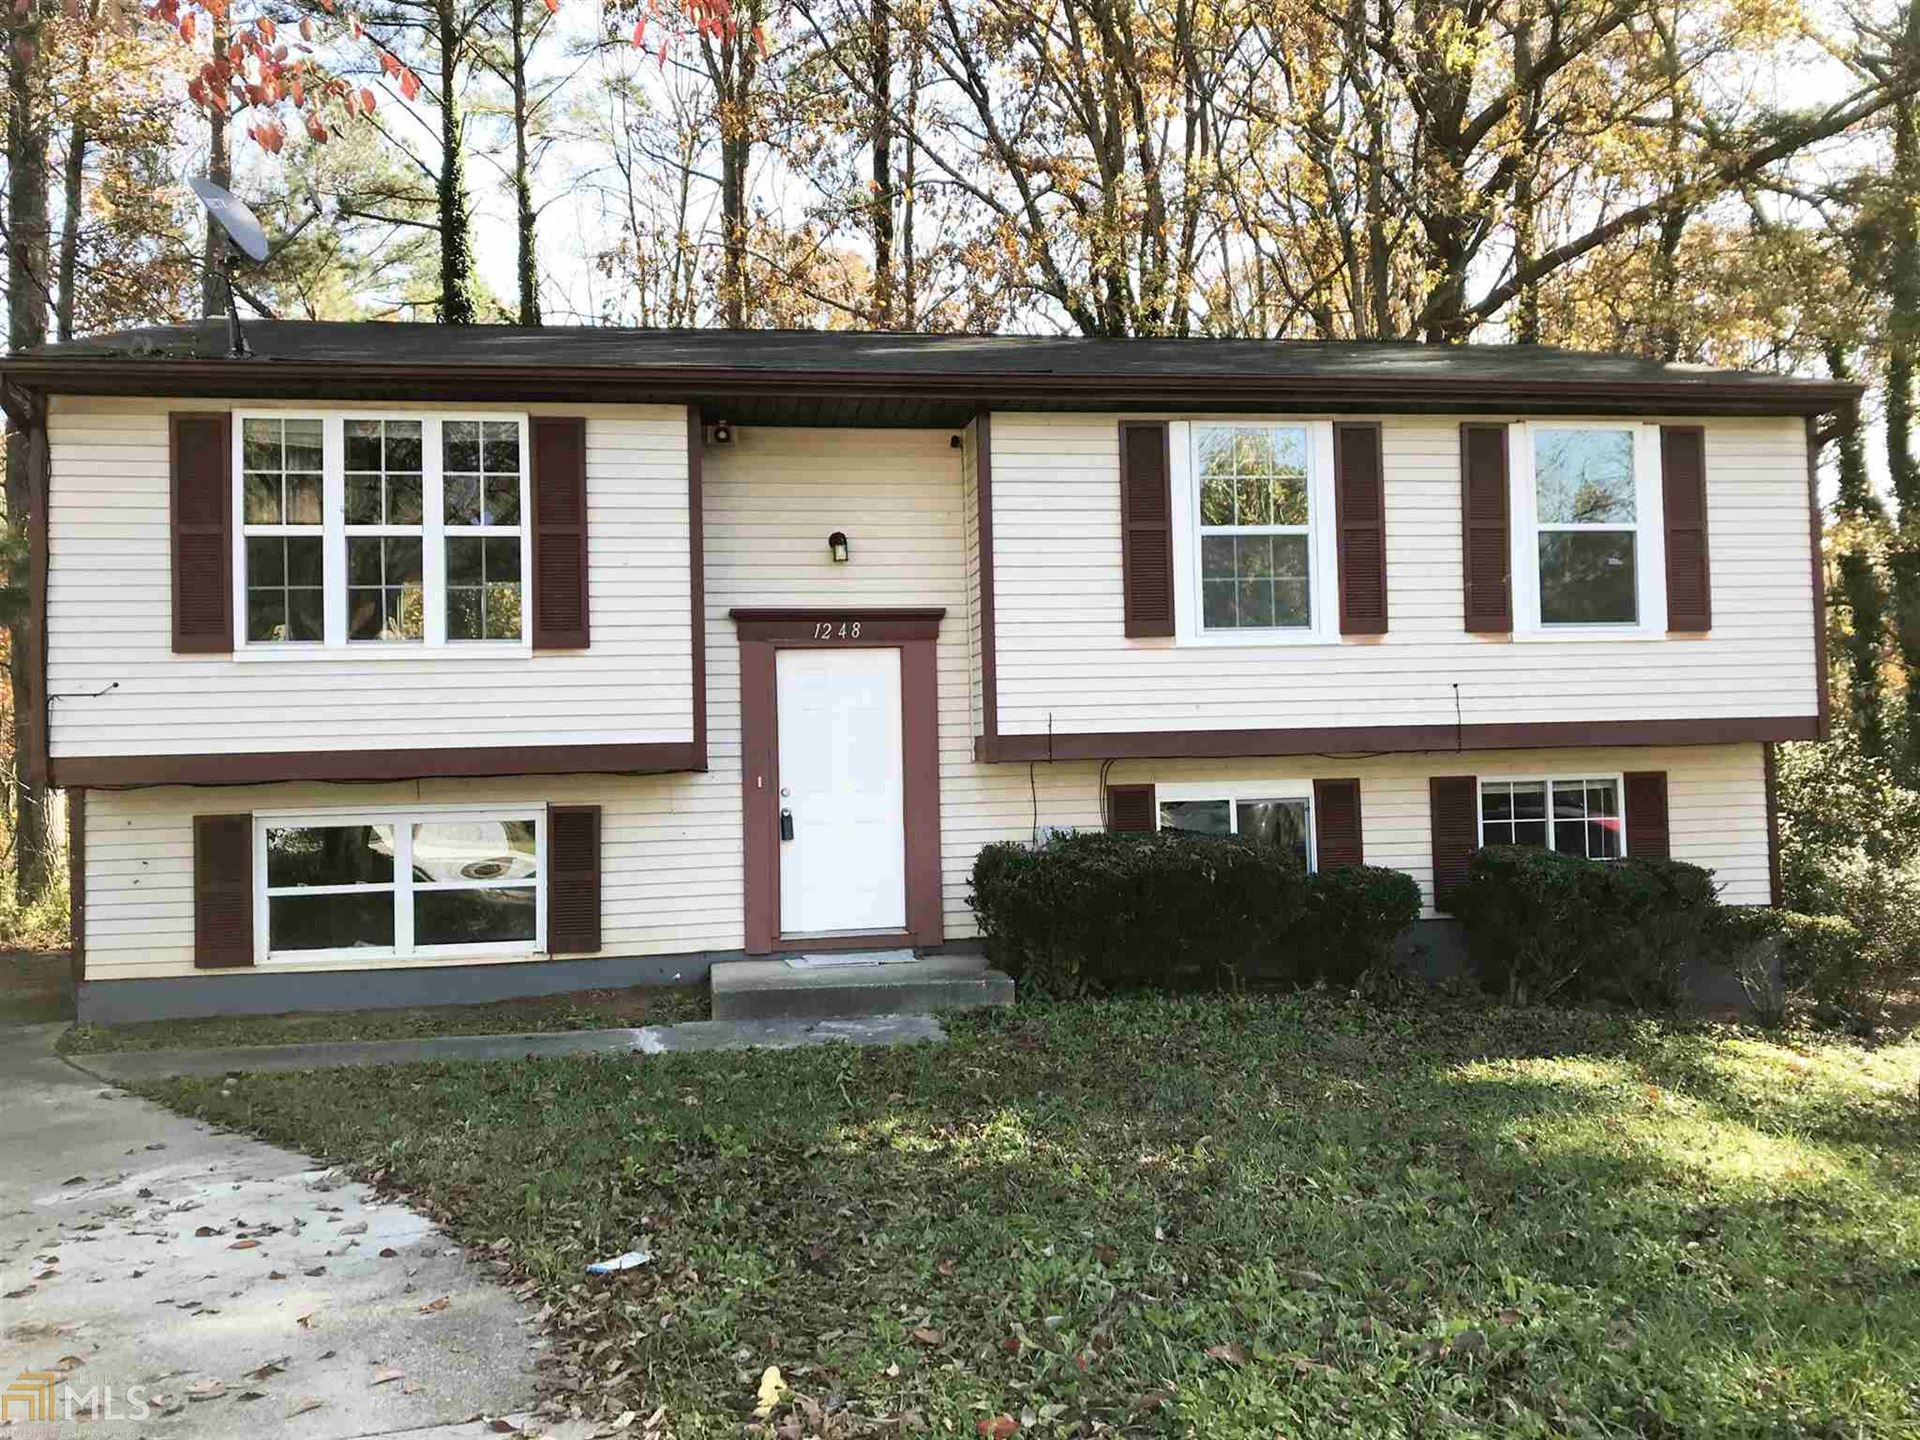 1248 Muirforest Ln, Stone Mountain, GA 30088 - #: 8972639